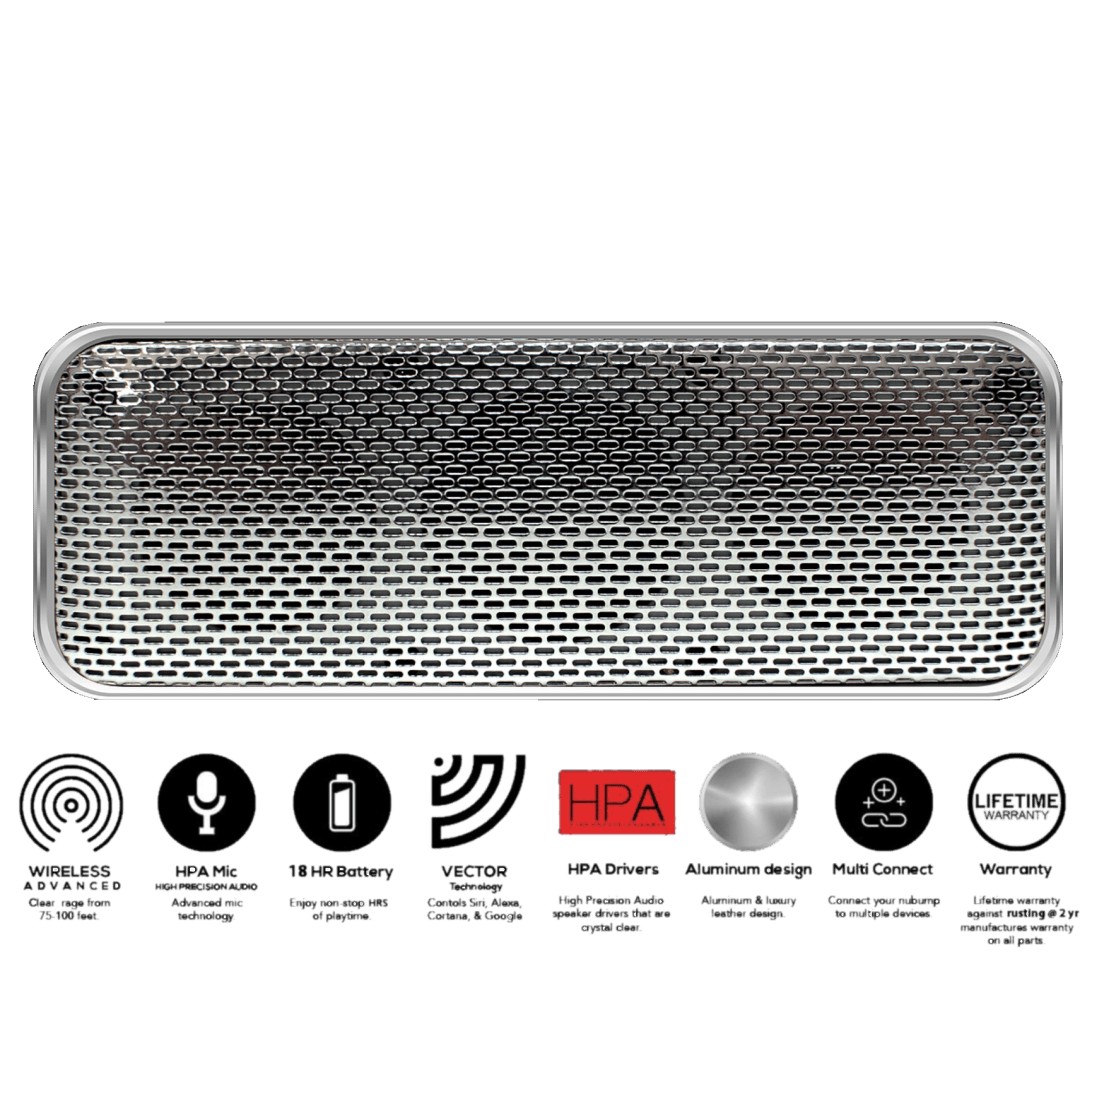 Fanstereo nubump bluetooth speaker. Leather vector goods svg stock